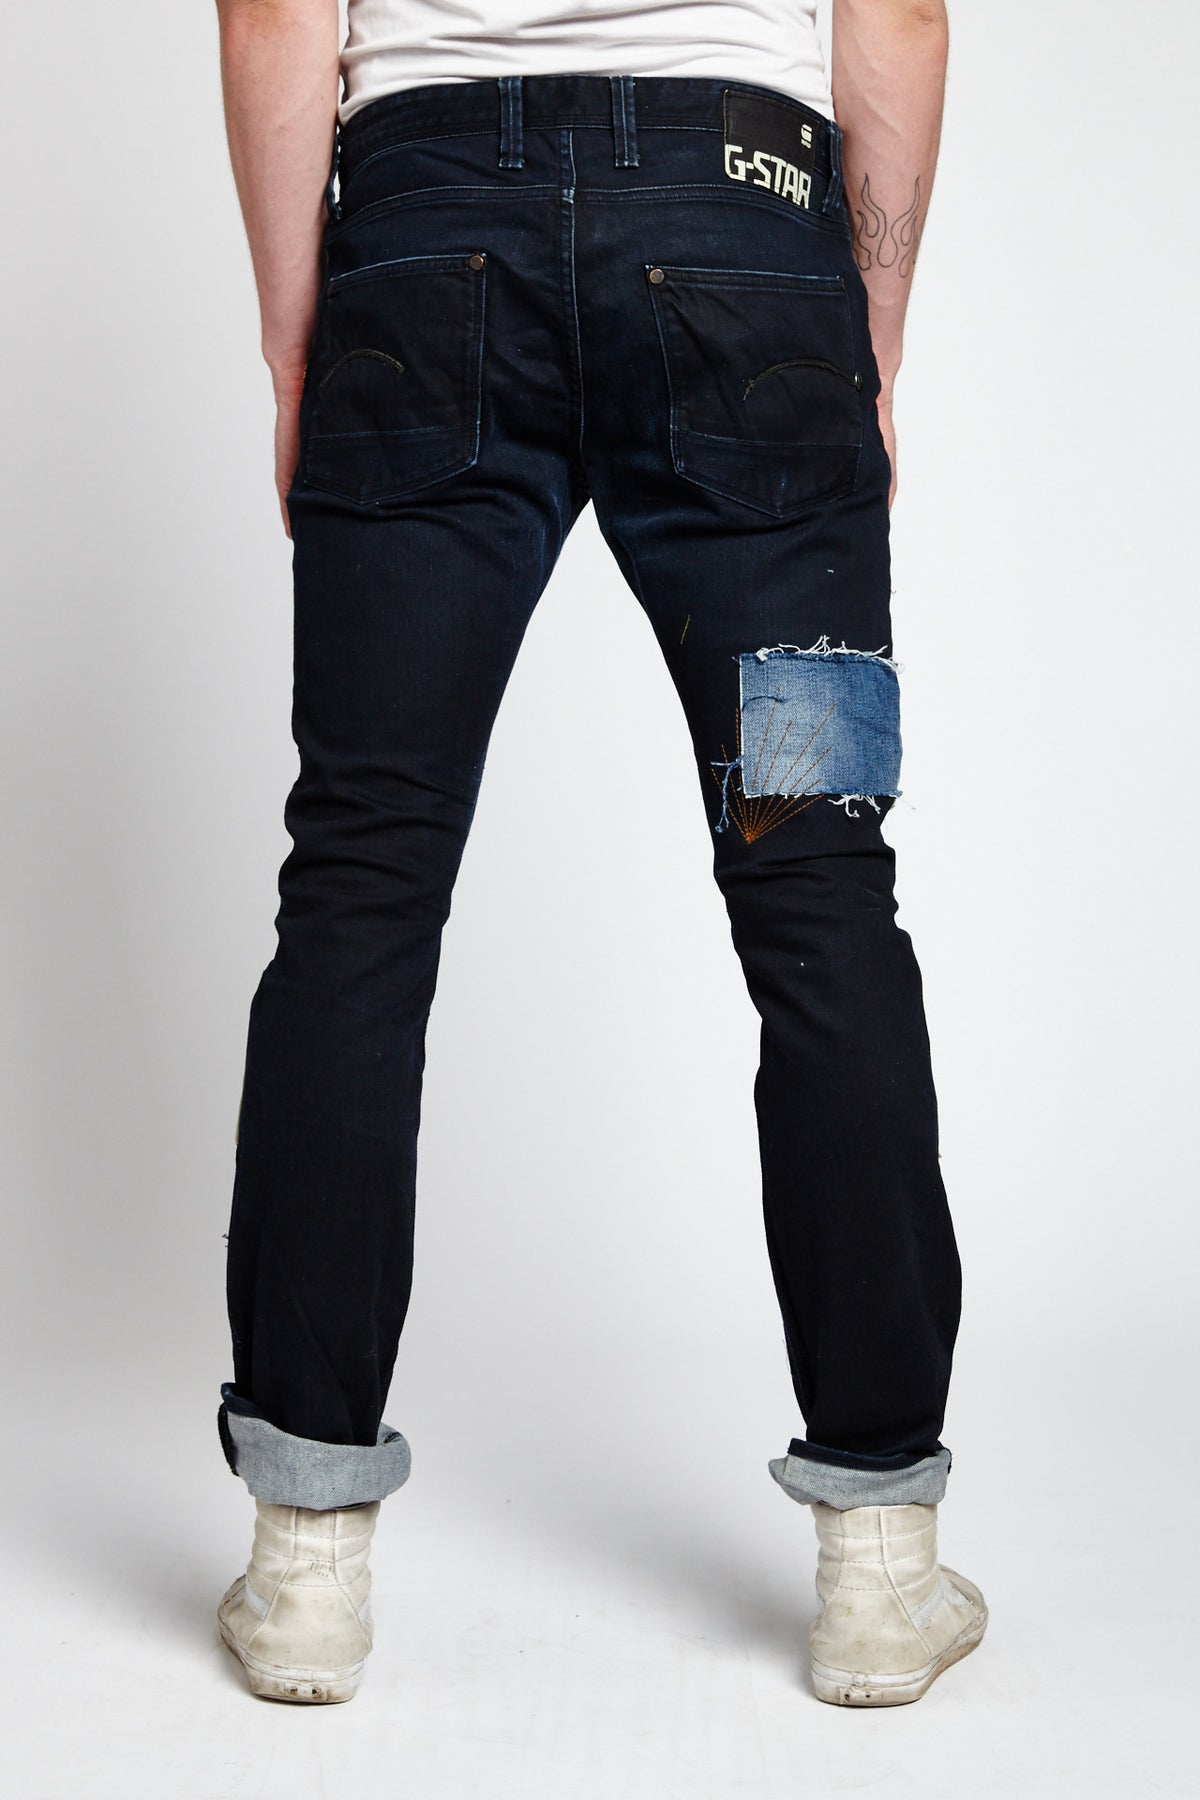 G-STAR RAW RECONSTRUCTED PATCHWORK COTTON BLACK 34 W JEANS-BOTTOMS-Mundane Official-34-BLACK-Mundane Official